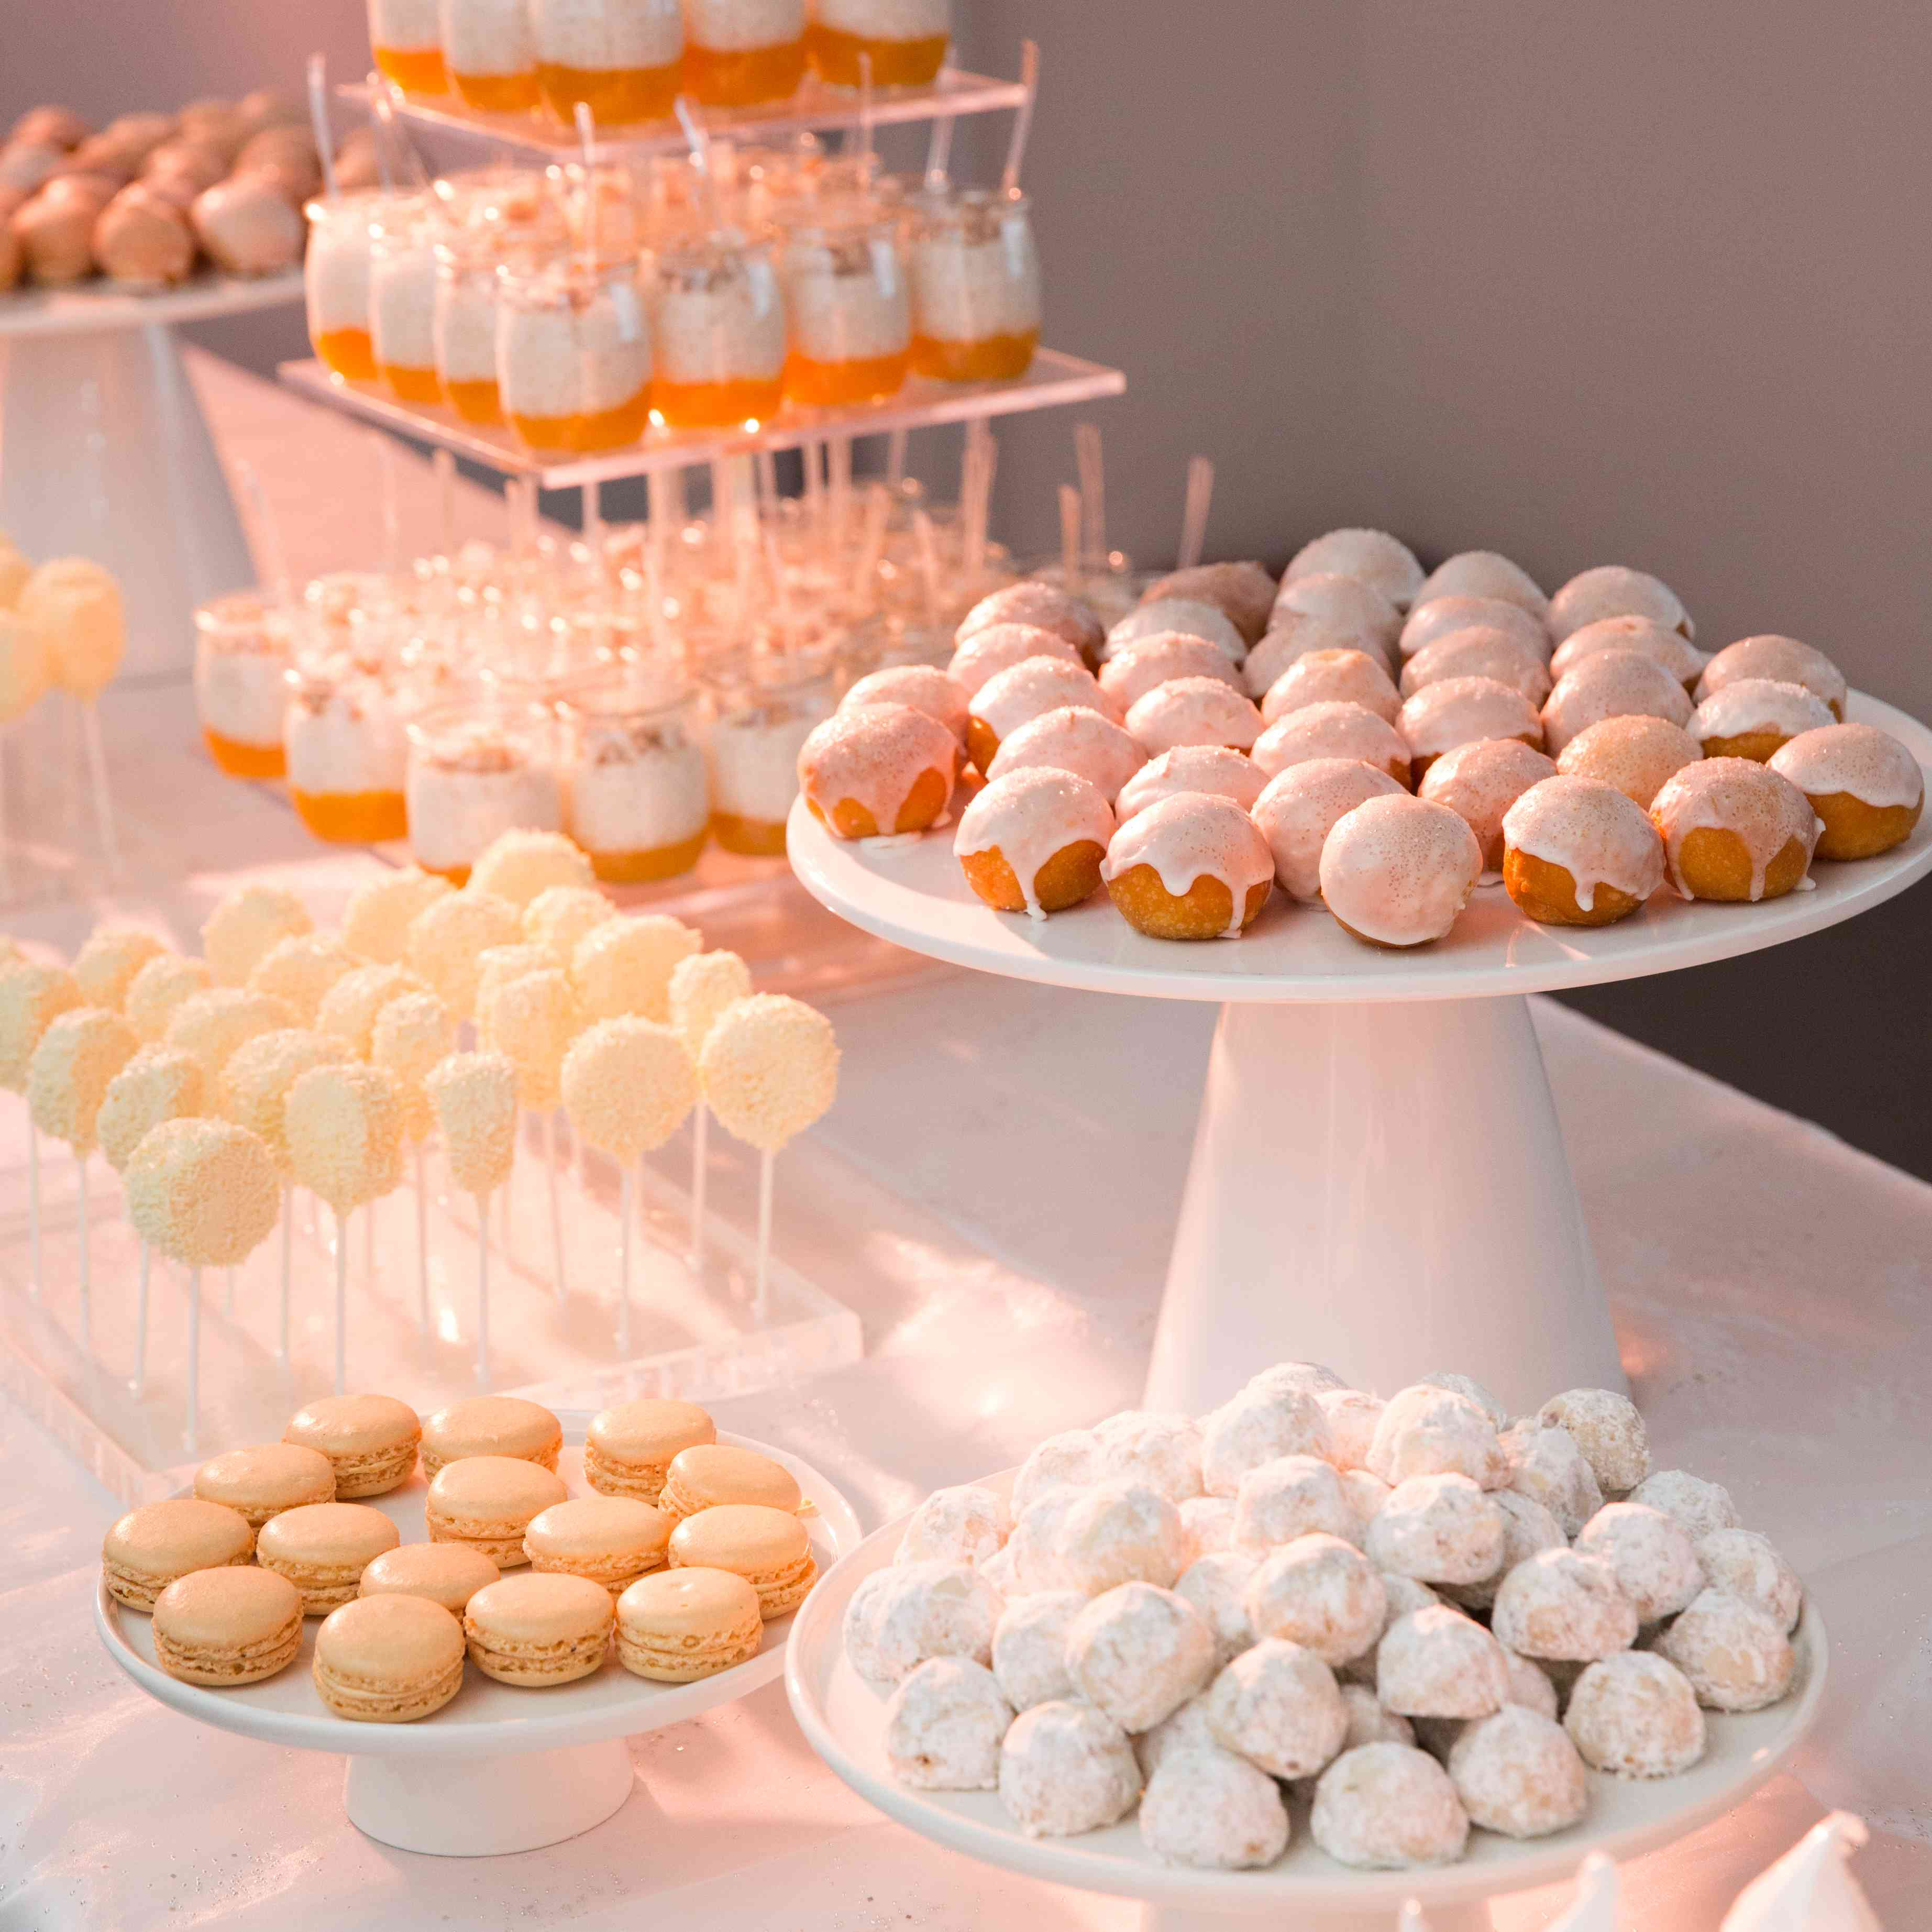 dessert bar with macaroons, cookies and donut holes